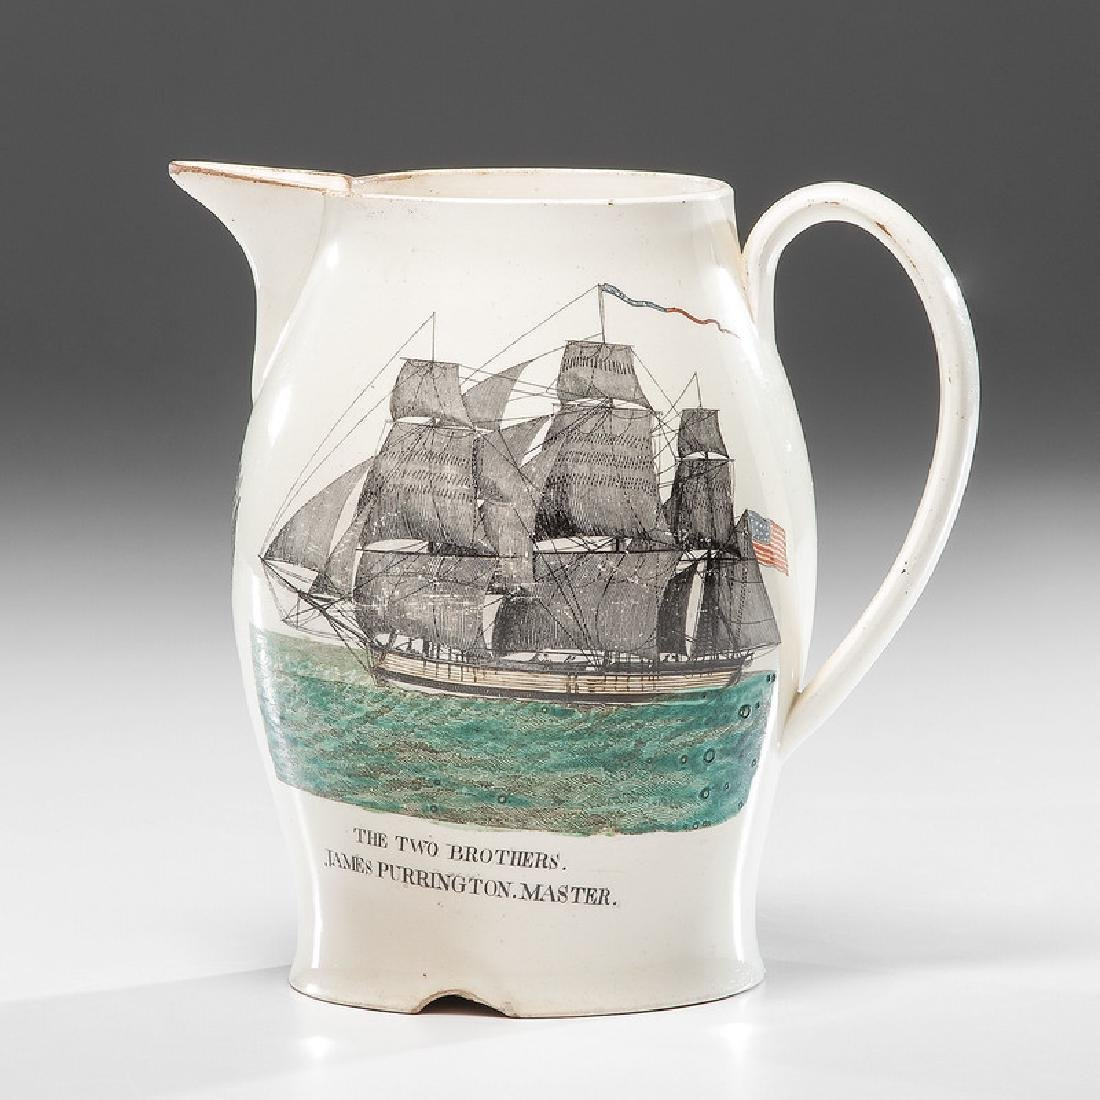 The Two Brothers Liverpool Creamware Jug